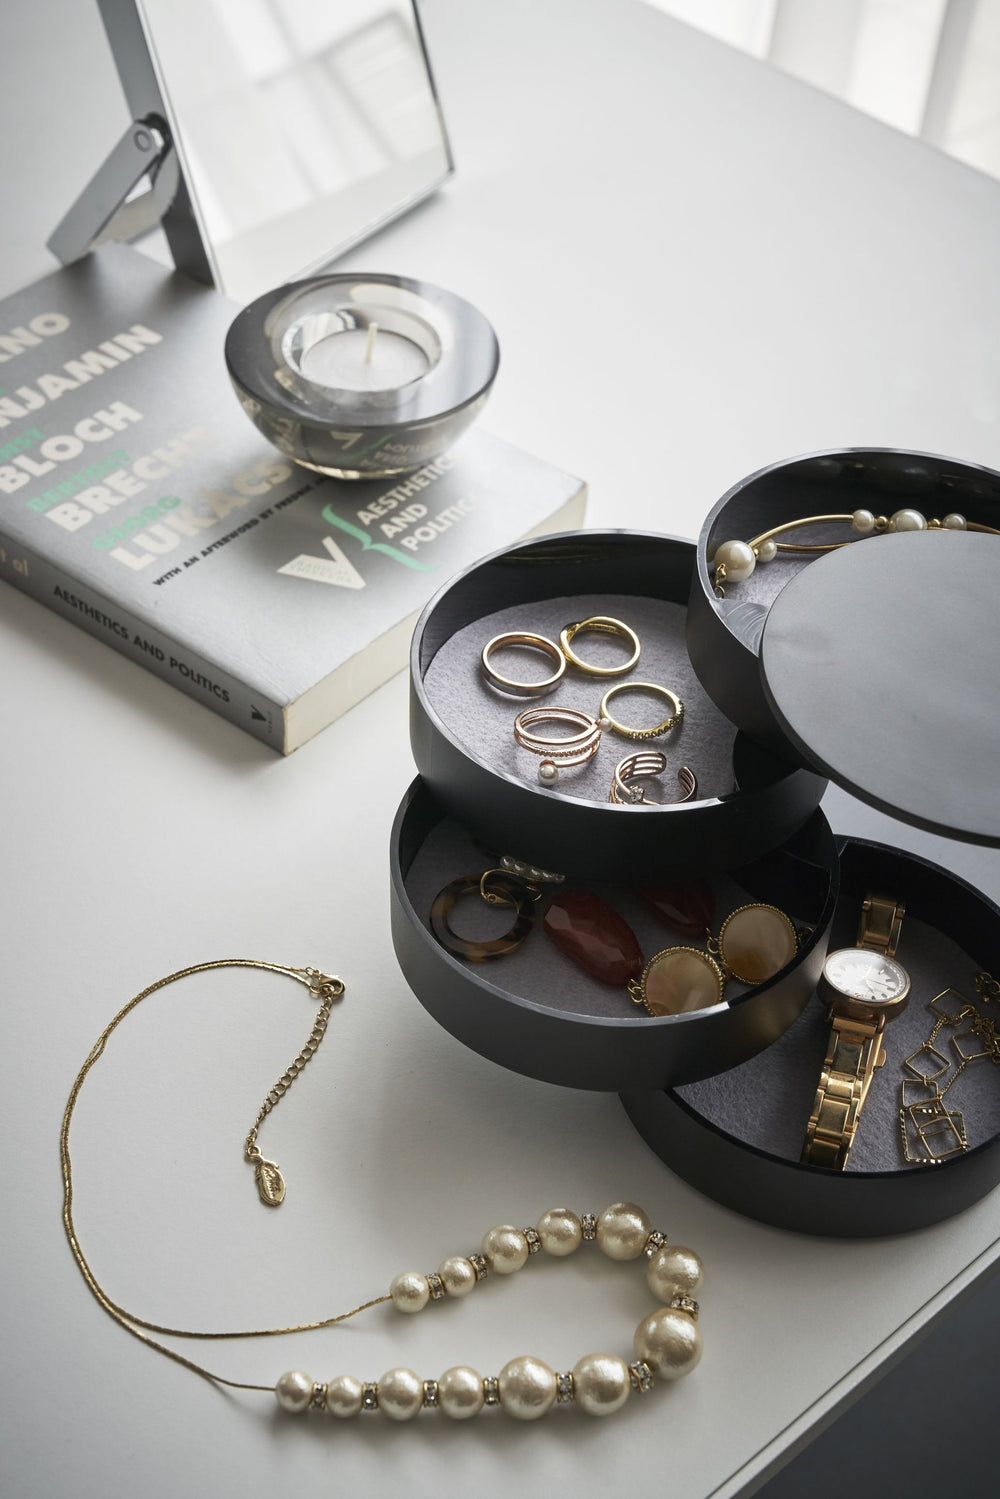 Yamazaki's 4-Tiered Accessory Tray on a desk with various jewelry pieces and accessories inside the various stacked round compartments. Assorted tabletop items appear as well, like a book, necklace, picture frame, and candle.